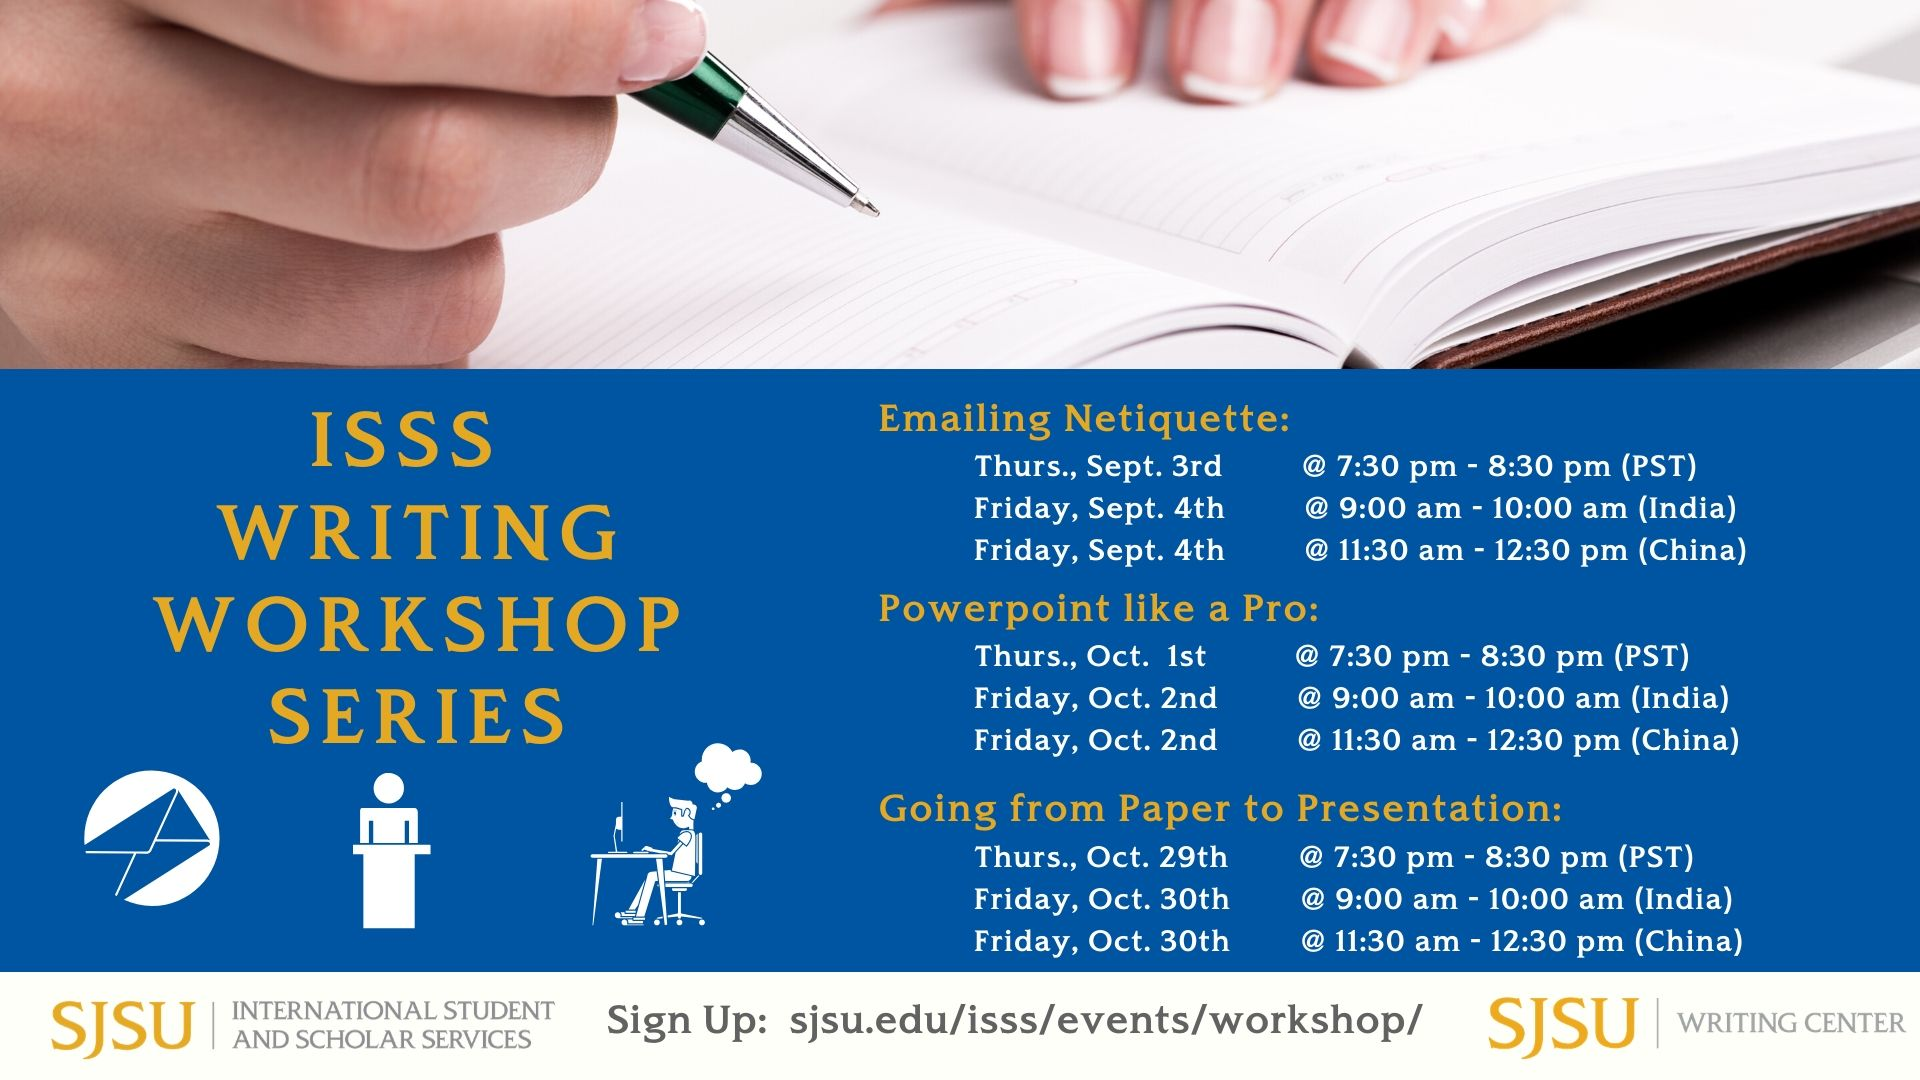 ISSS Writing Workshop Series